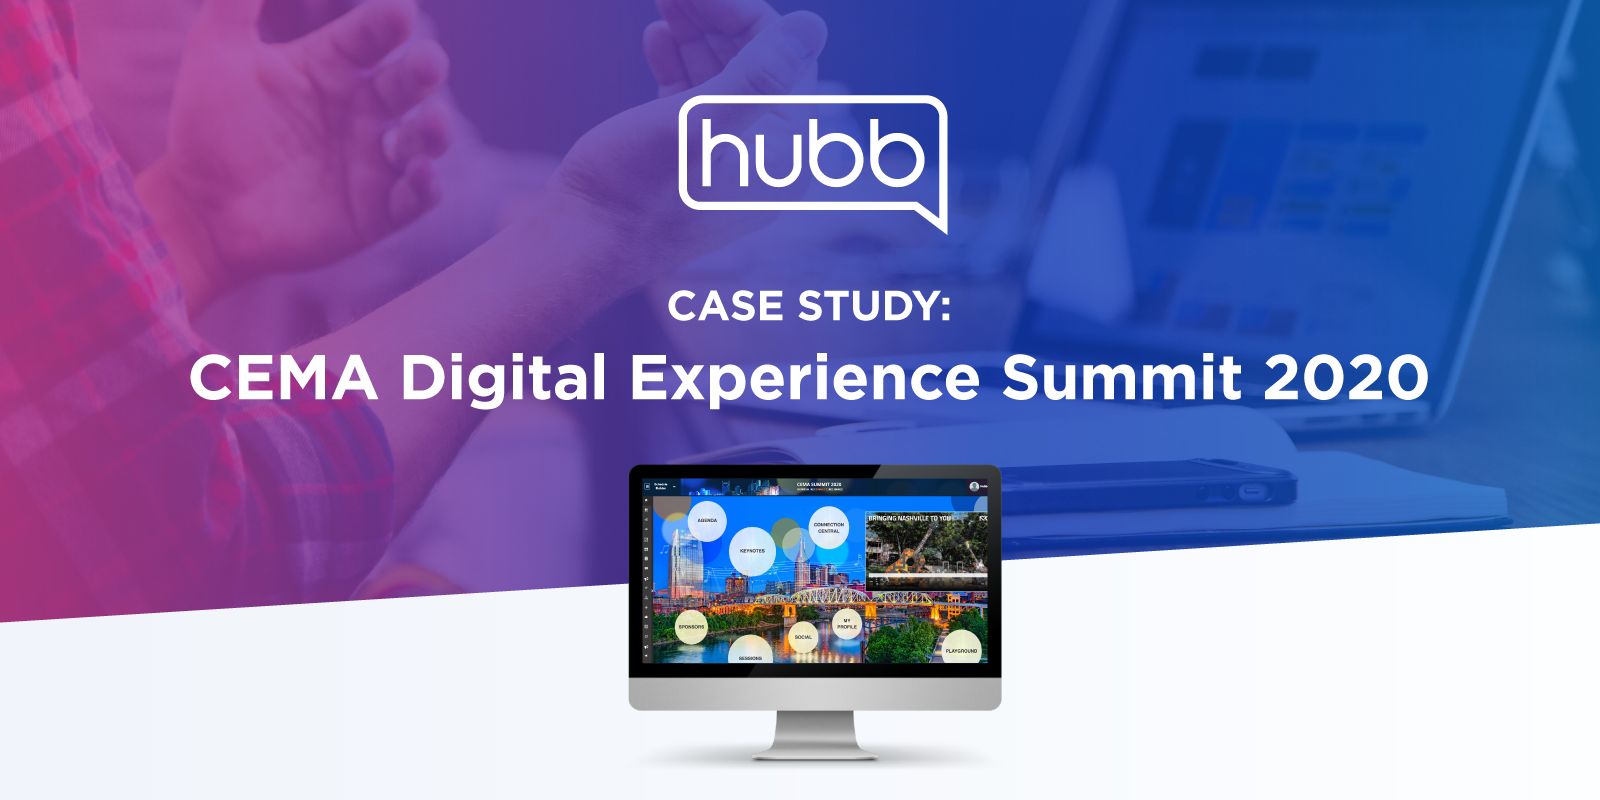 Case Study: CEMA Digital Experience Summit 2020